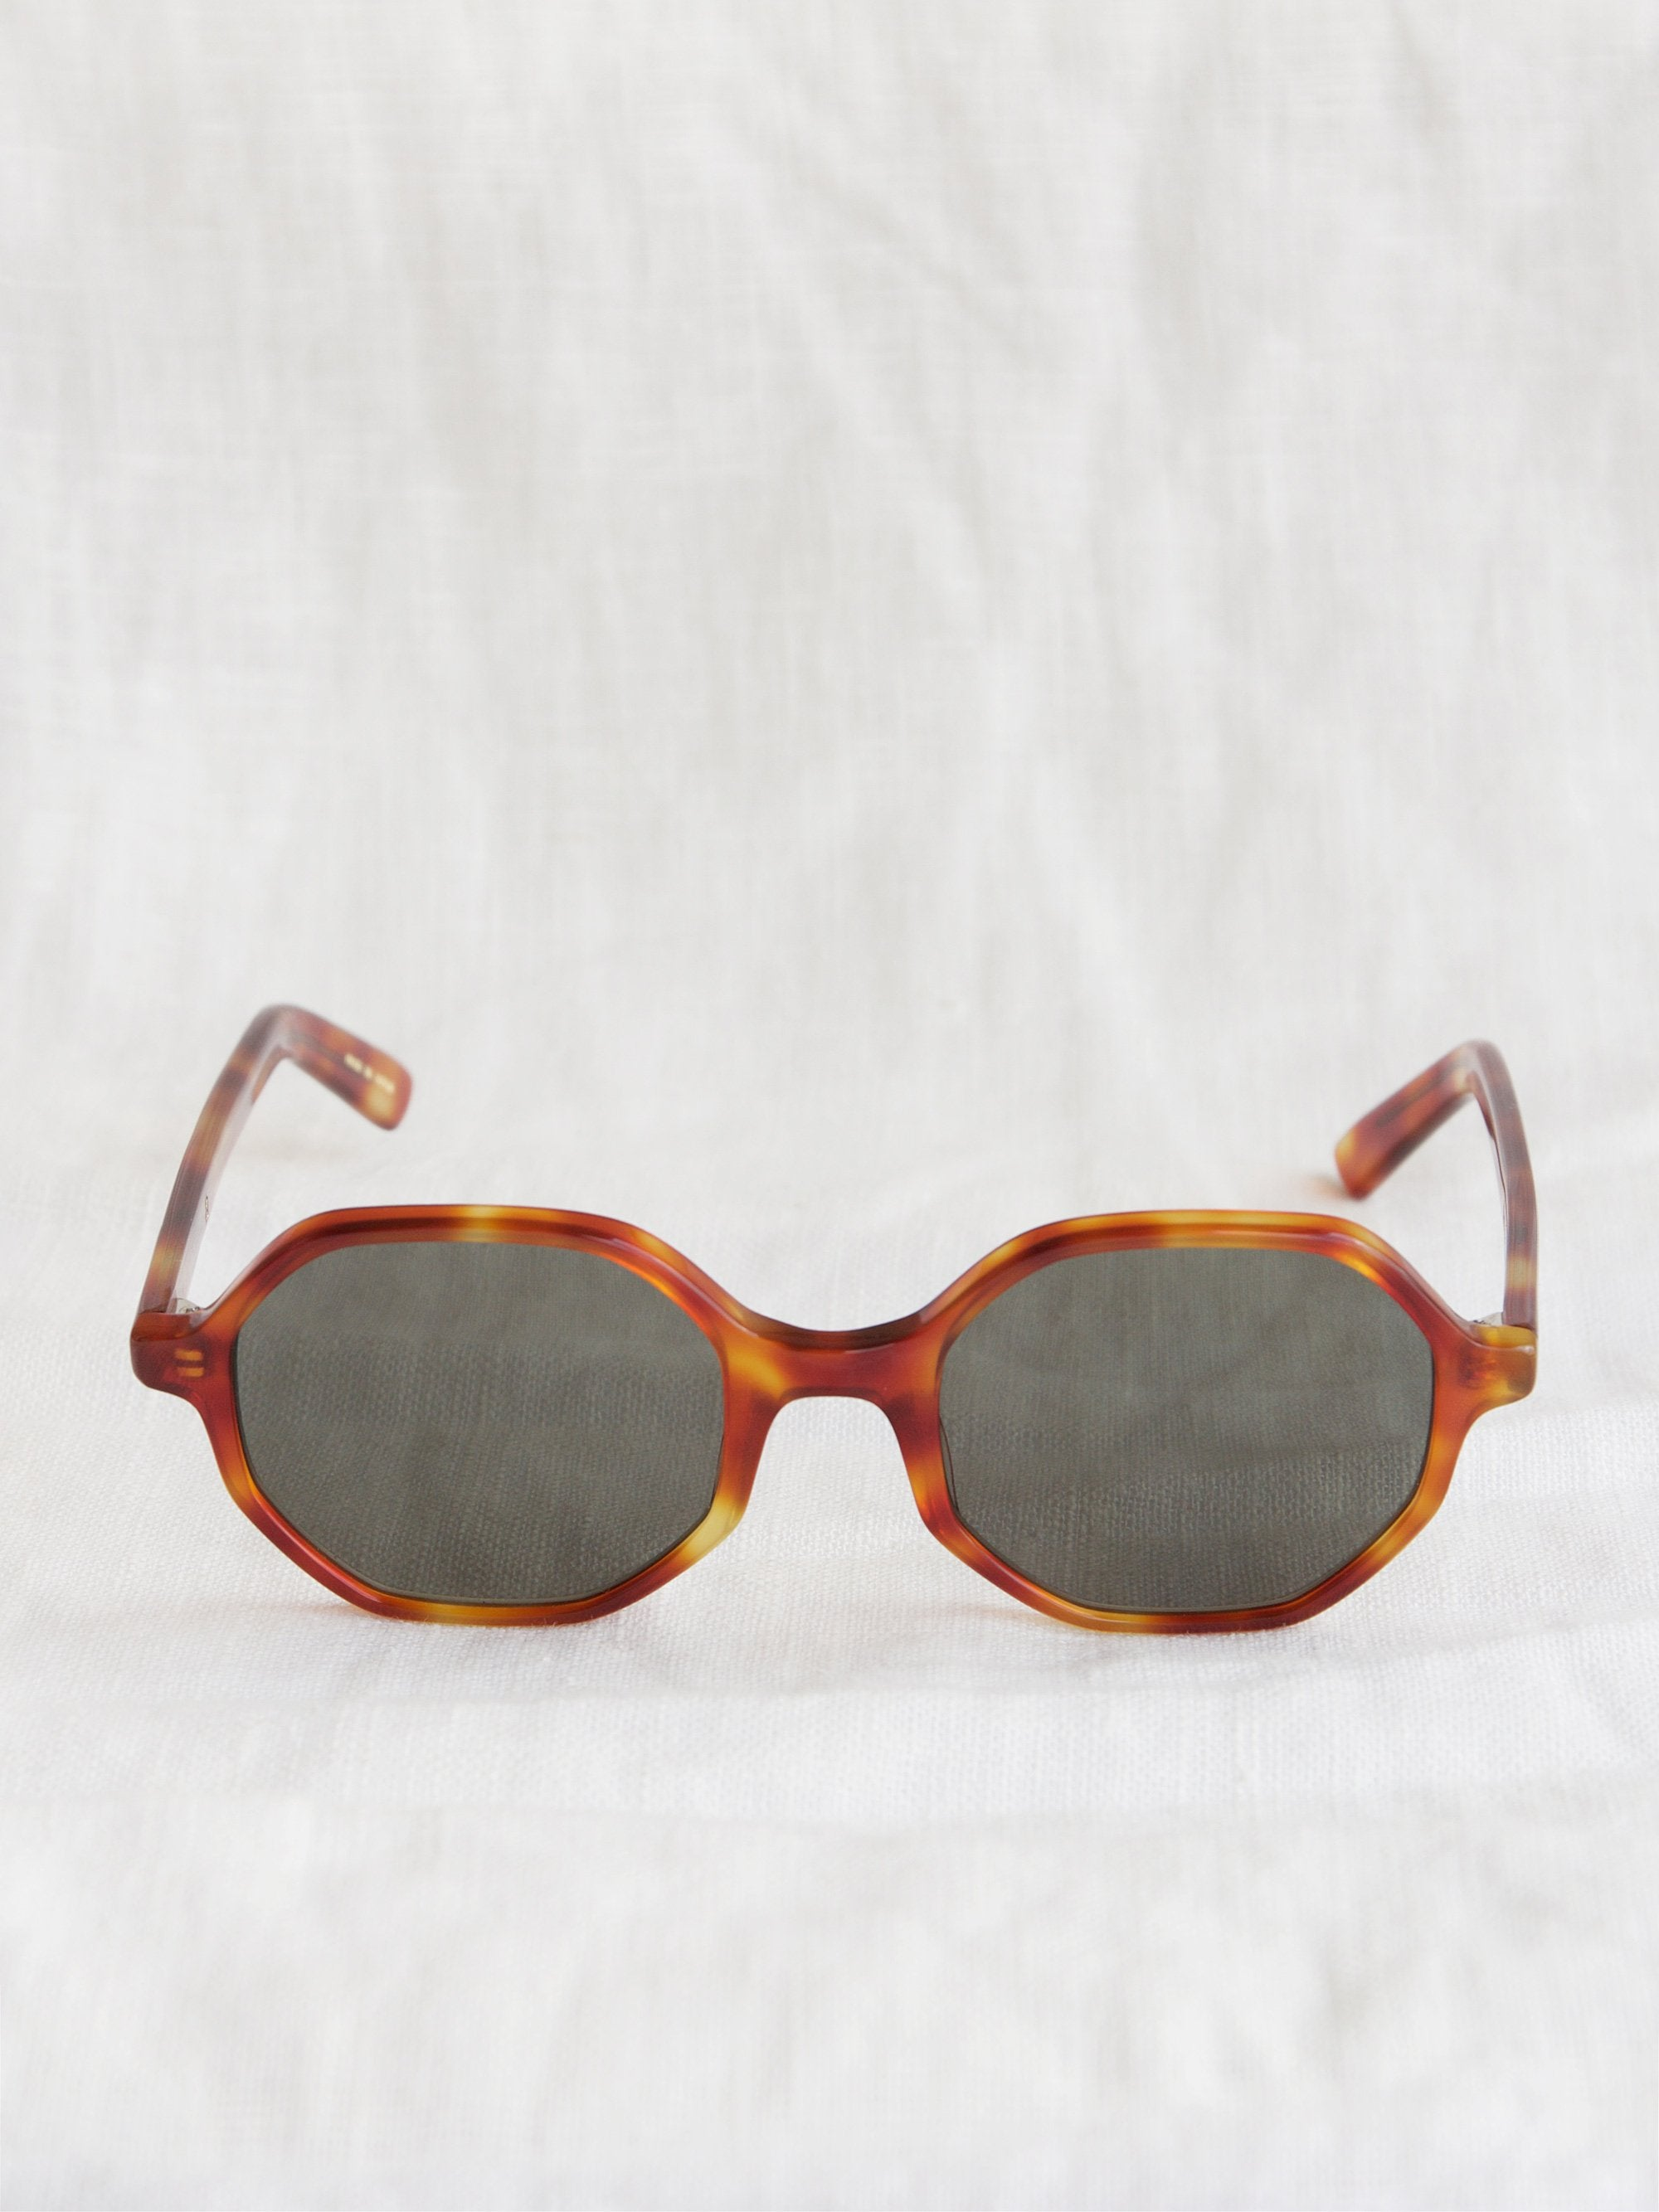 Namu Shop - Buddy Optical a - Candy Tortoise